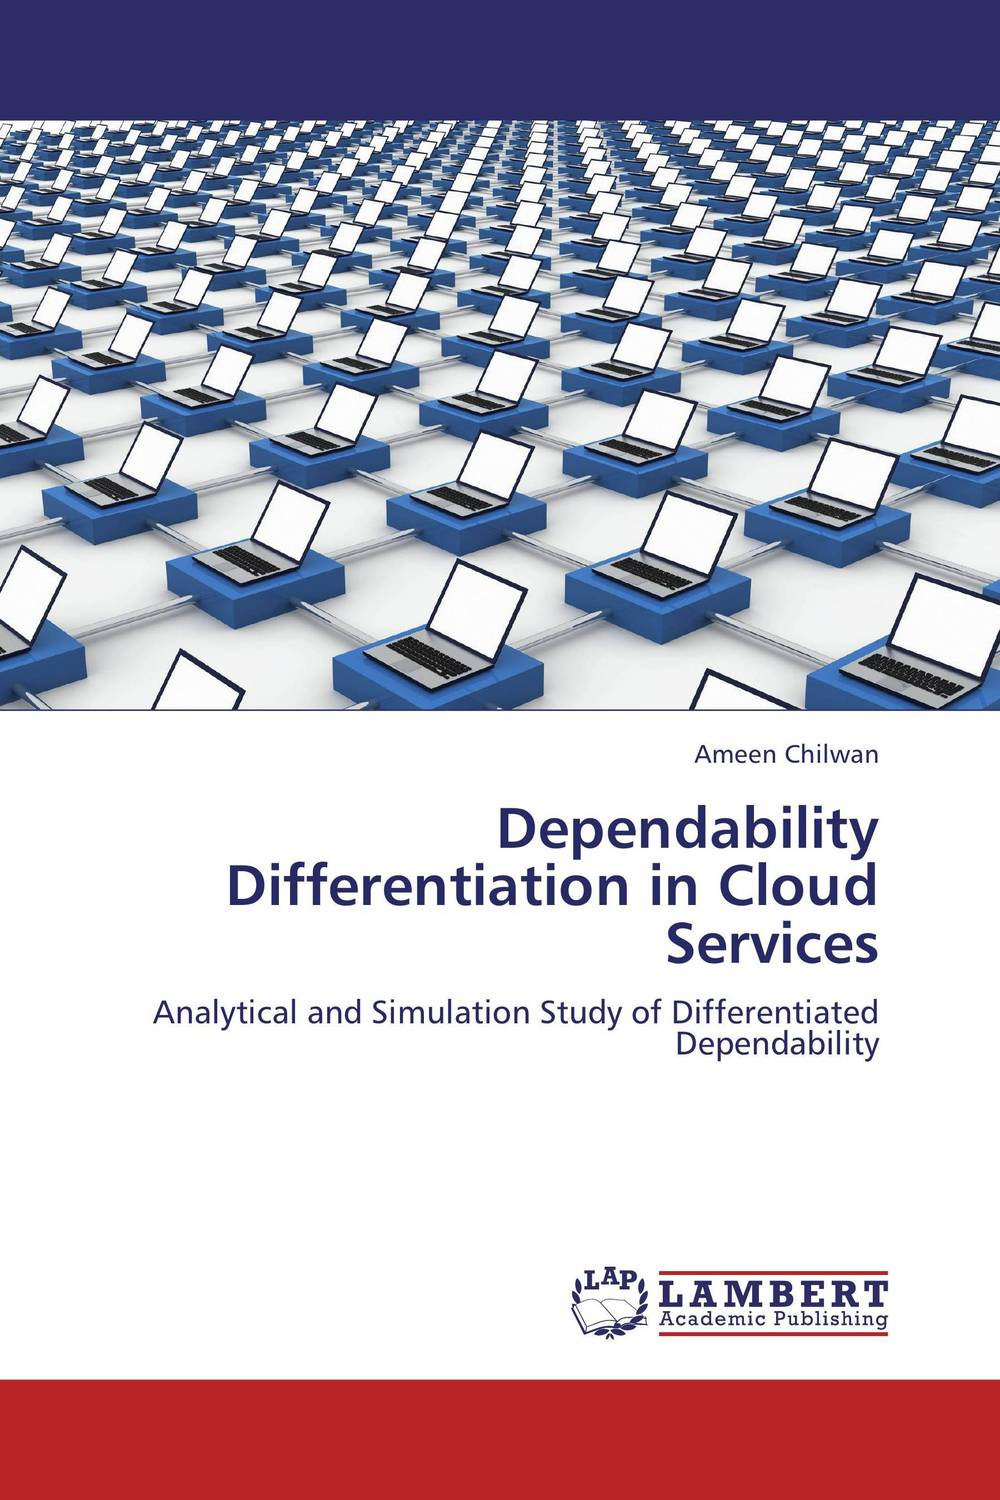 Dependability Differentiation in Cloud Services boscam 5 8ghz cloud spirit antennas txa and rxa a pair in one set multicolored